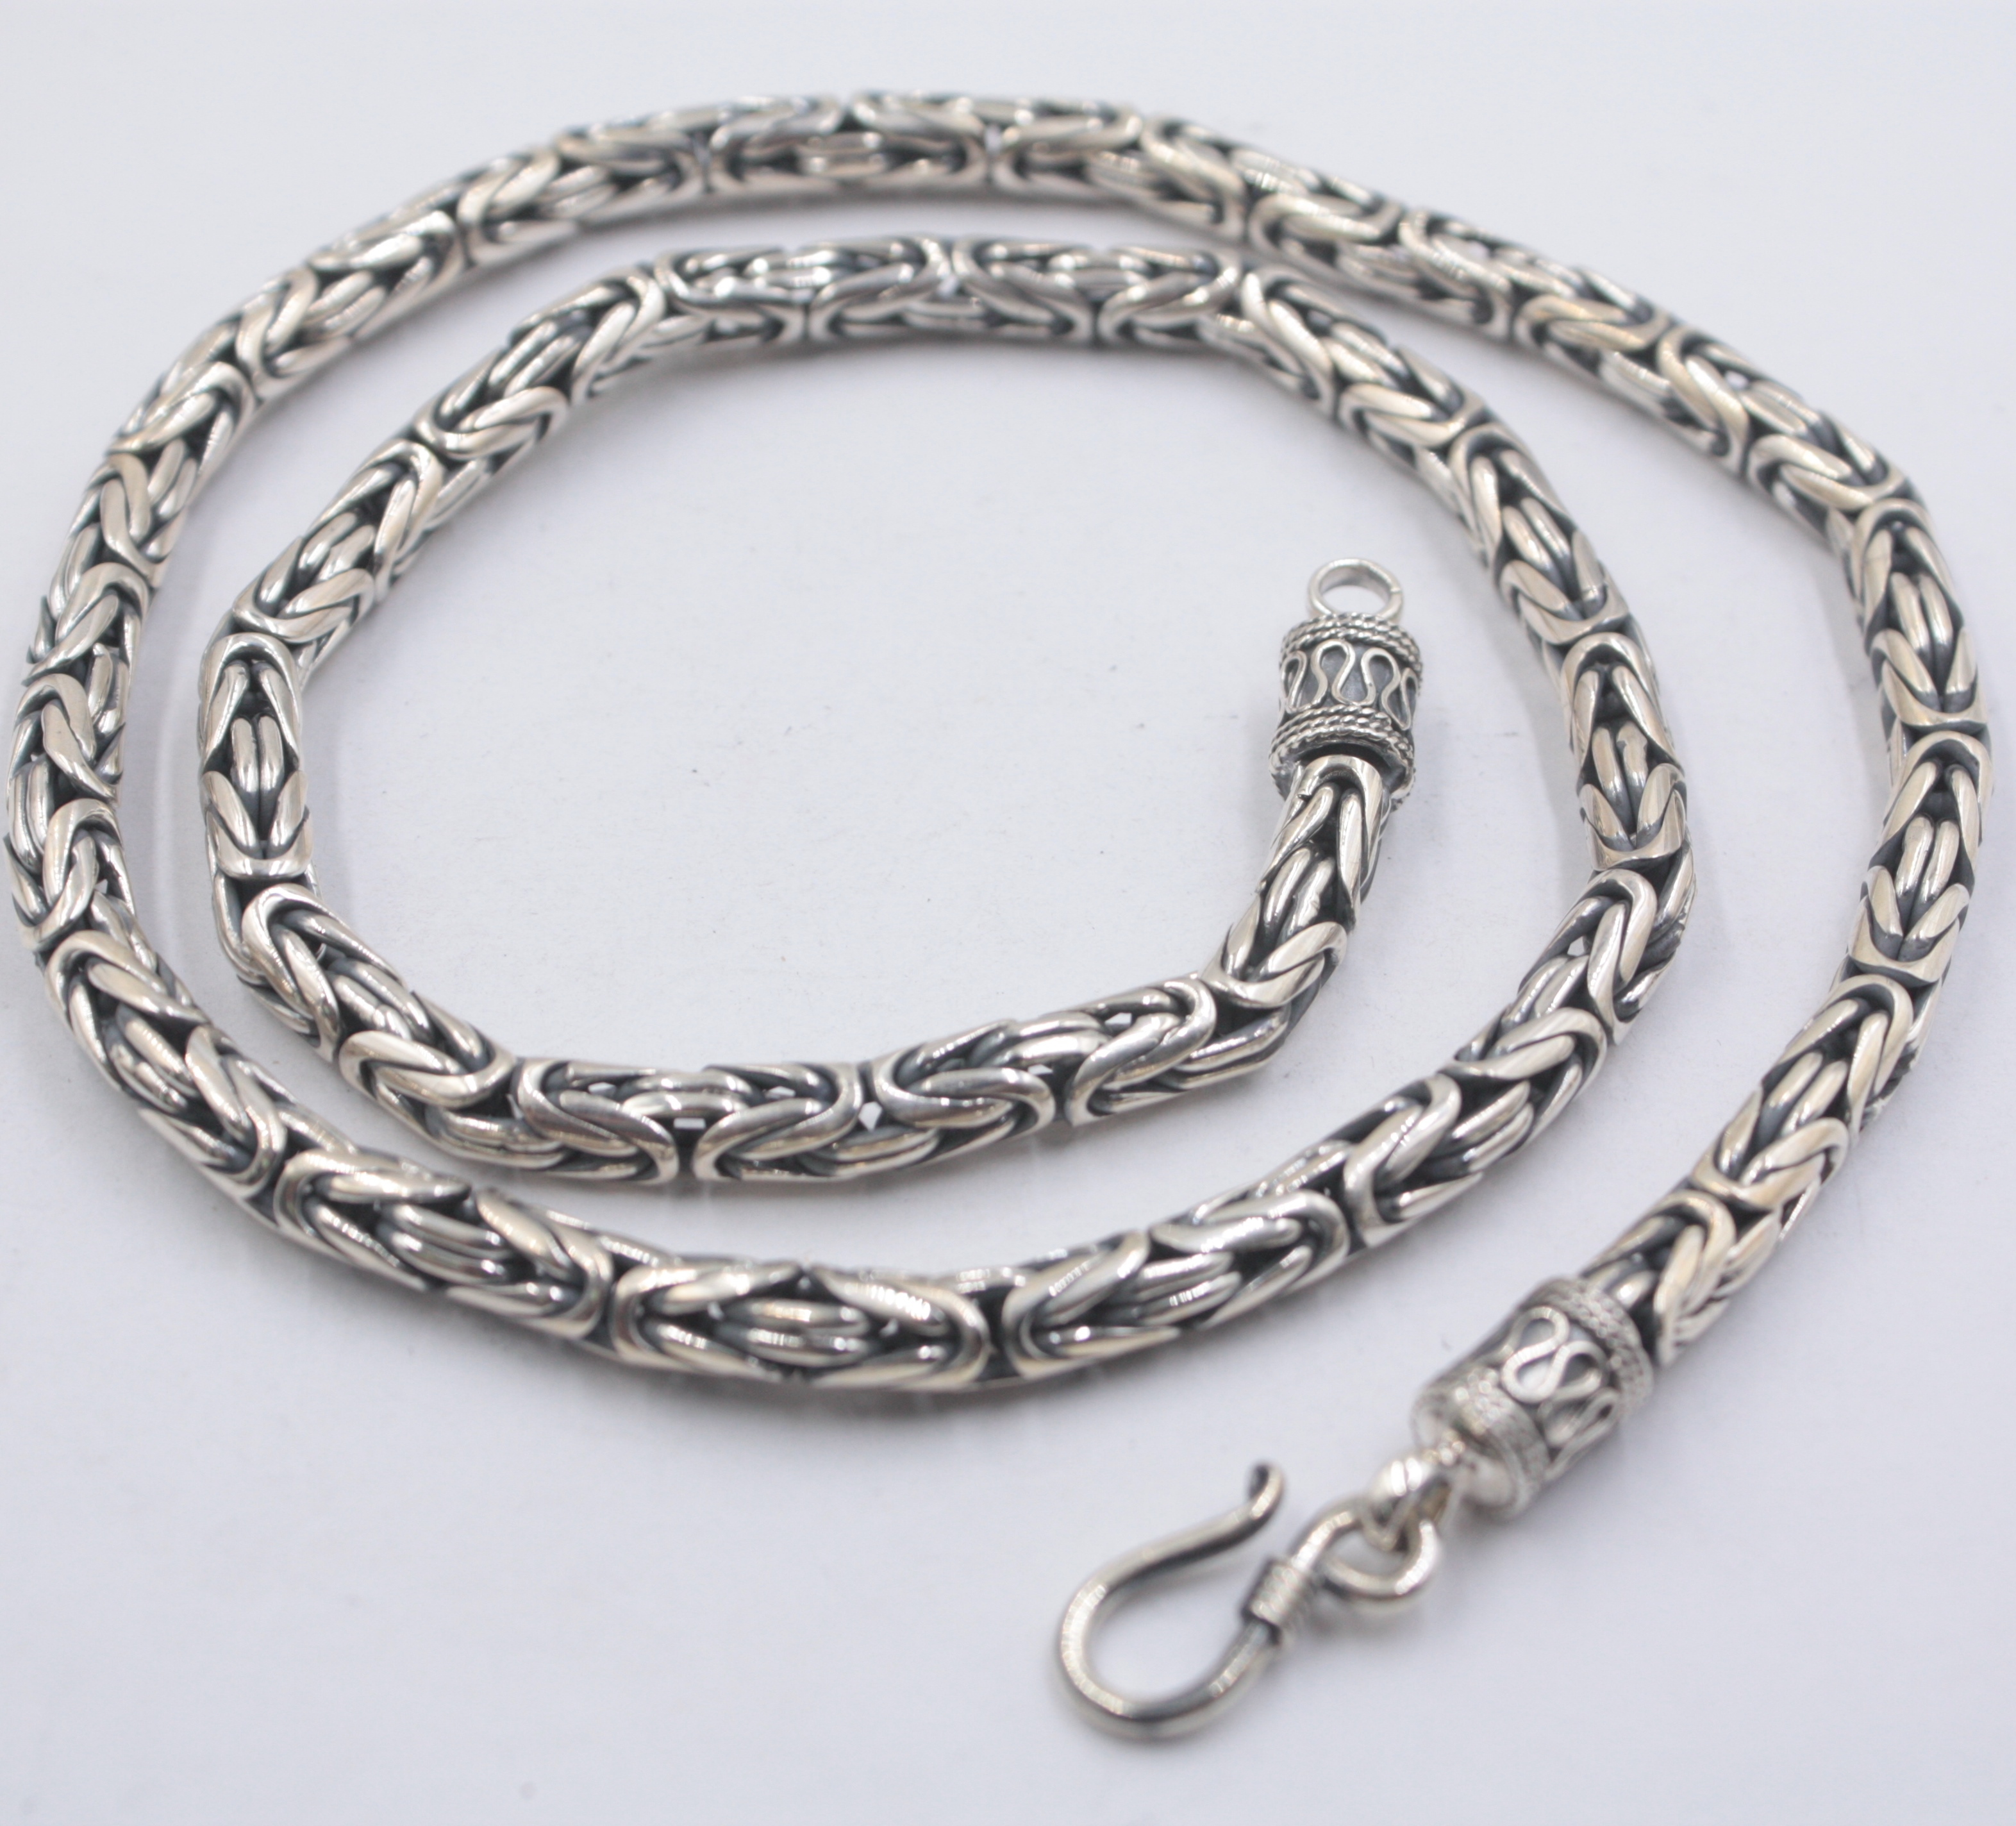 Details about  /Vintage Real S925 Sterling Silver Chain Women Men Cable Link Necklace 4mm